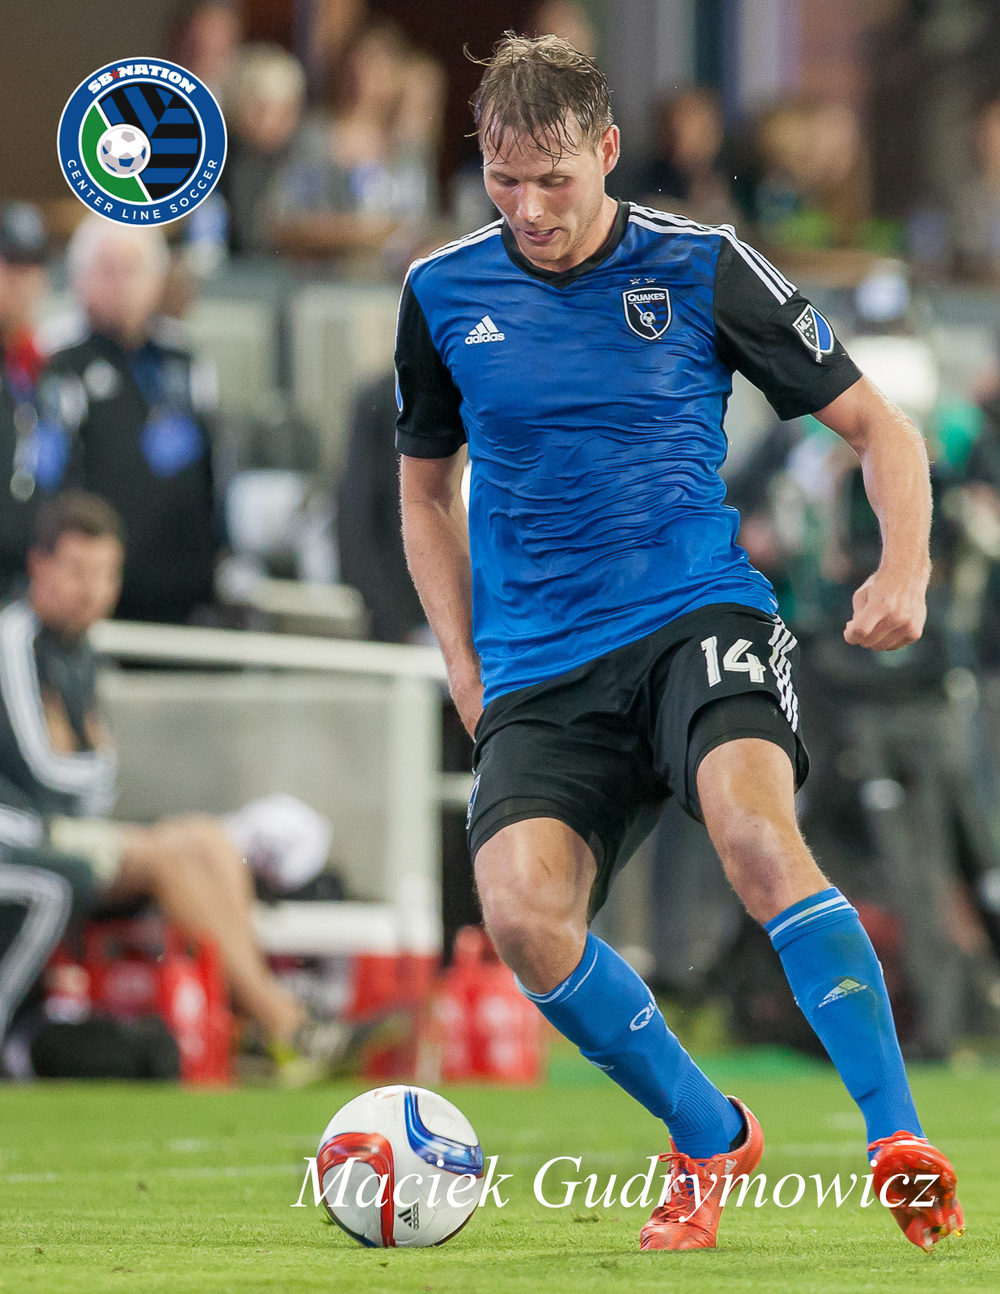 Quakes - Whitecaps-1-39.jpg